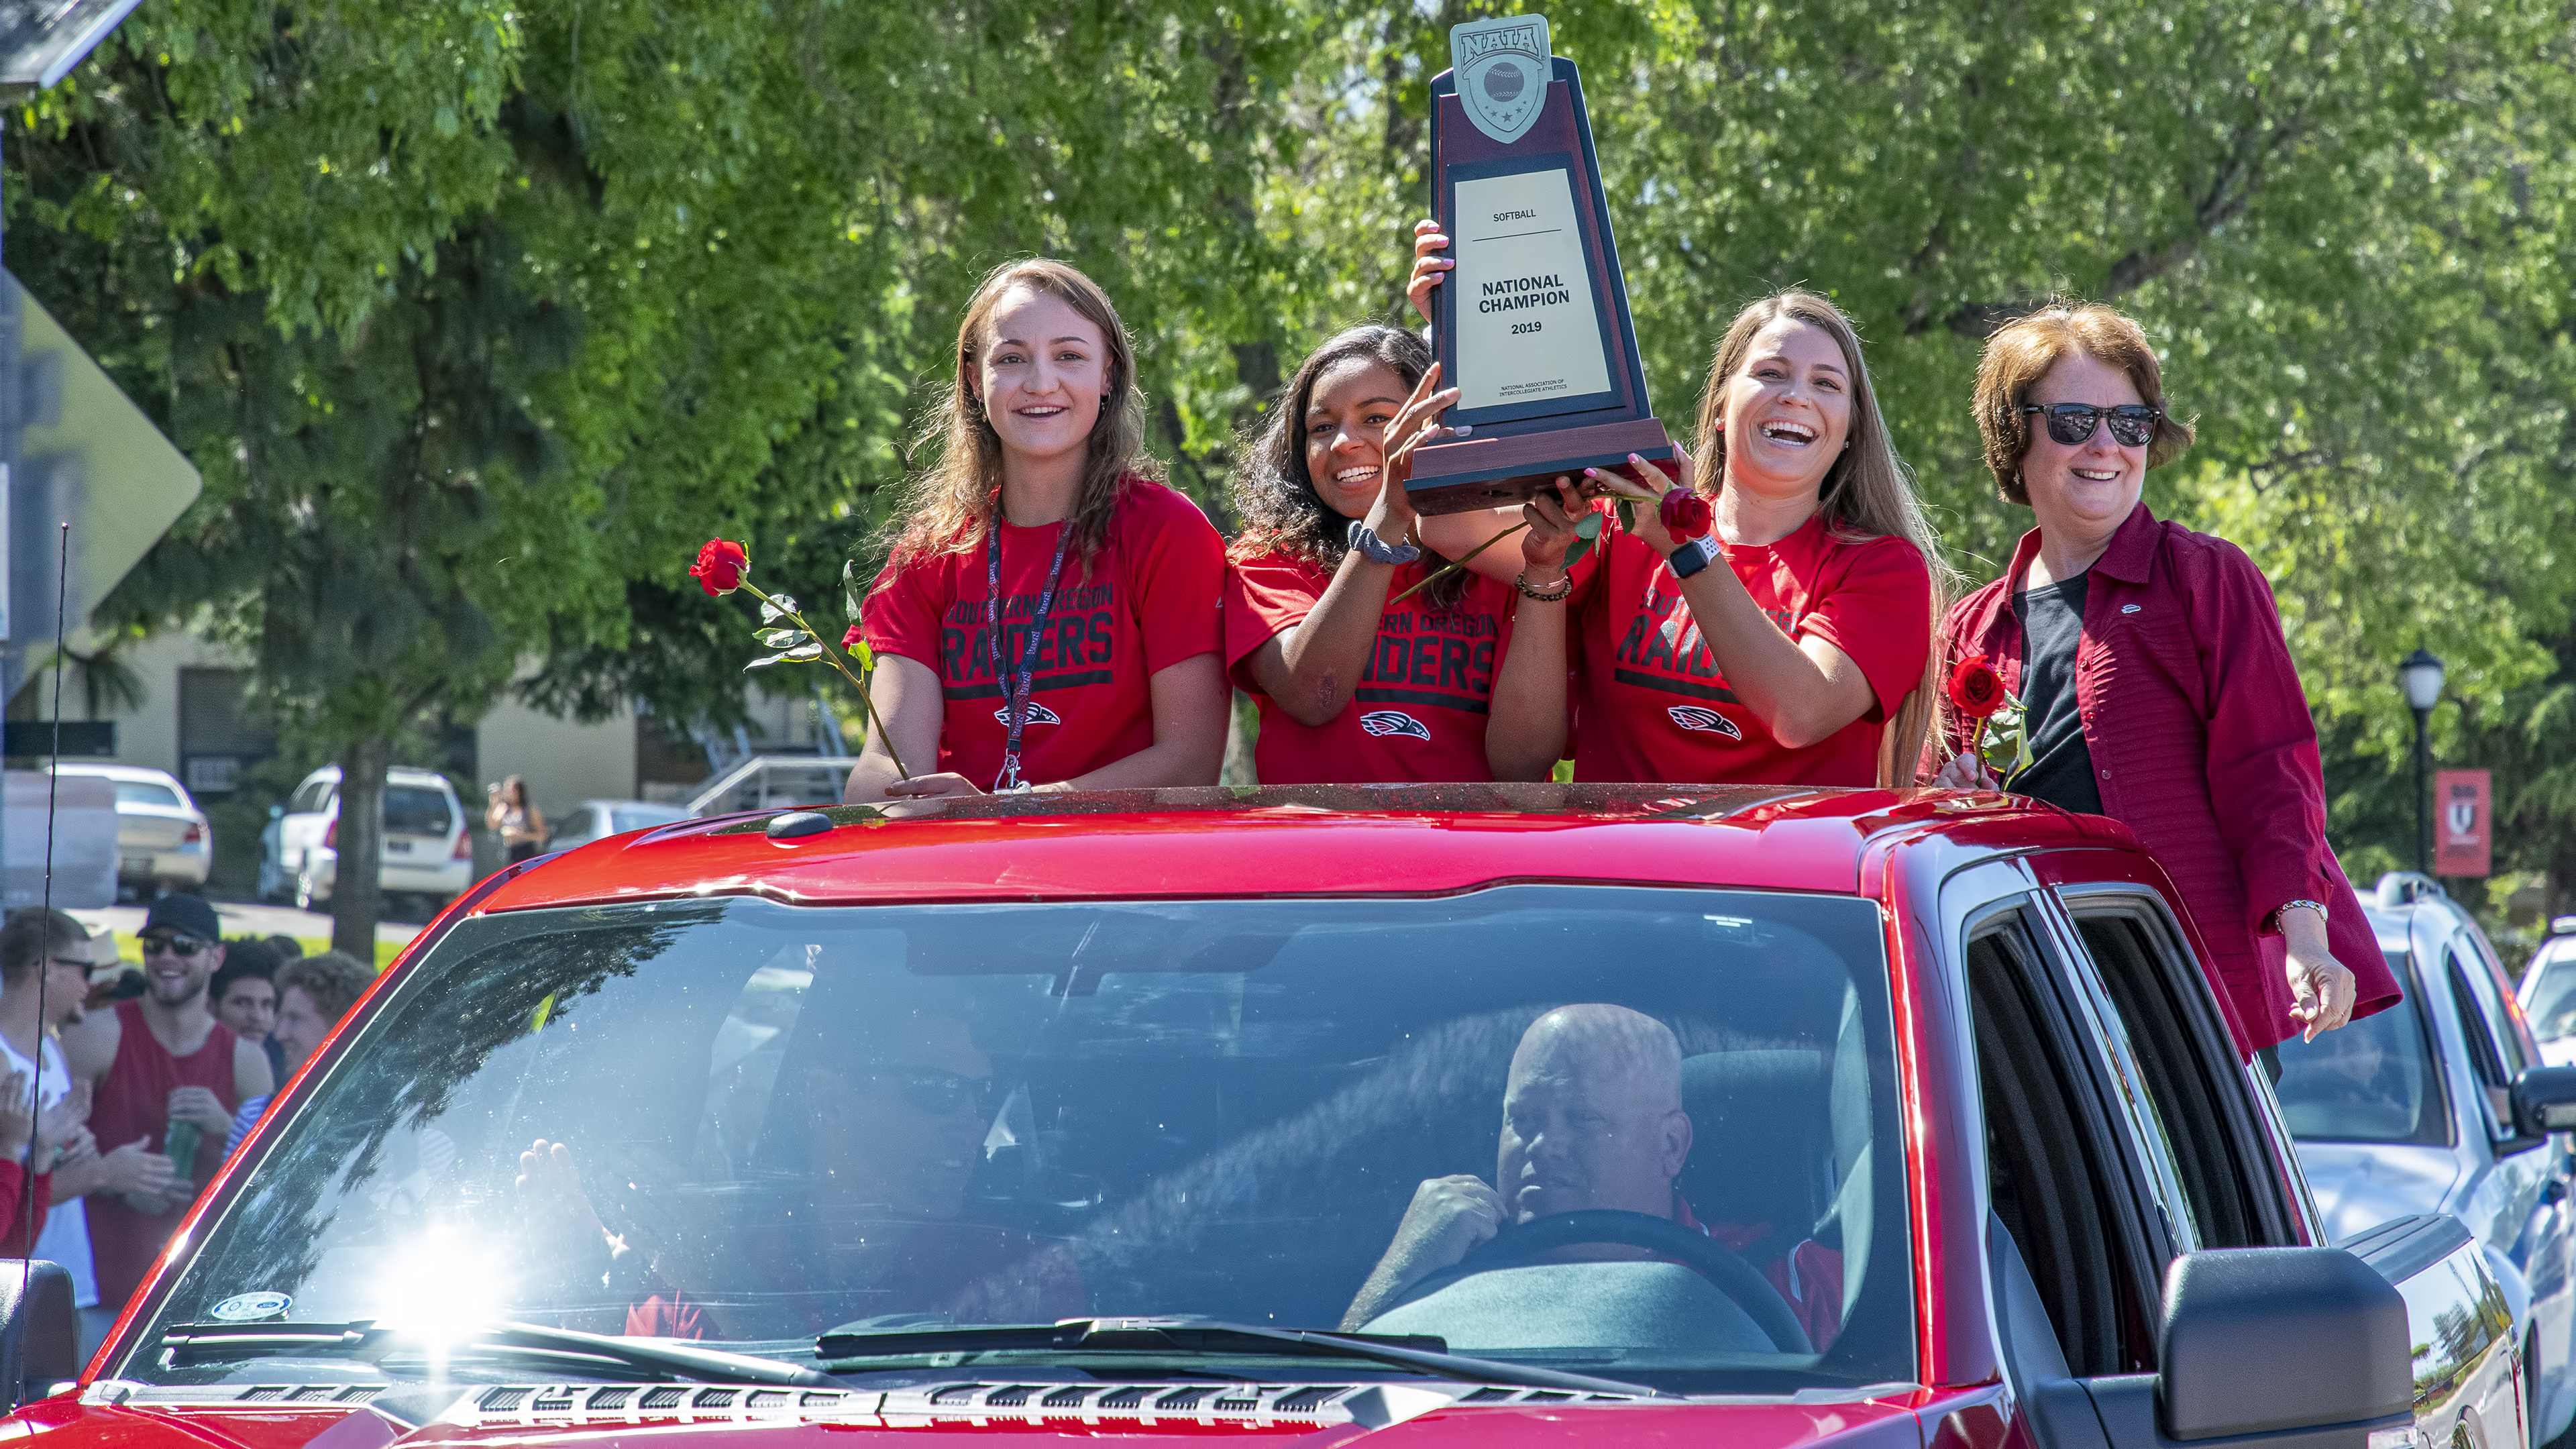 sou softball parade linda schott